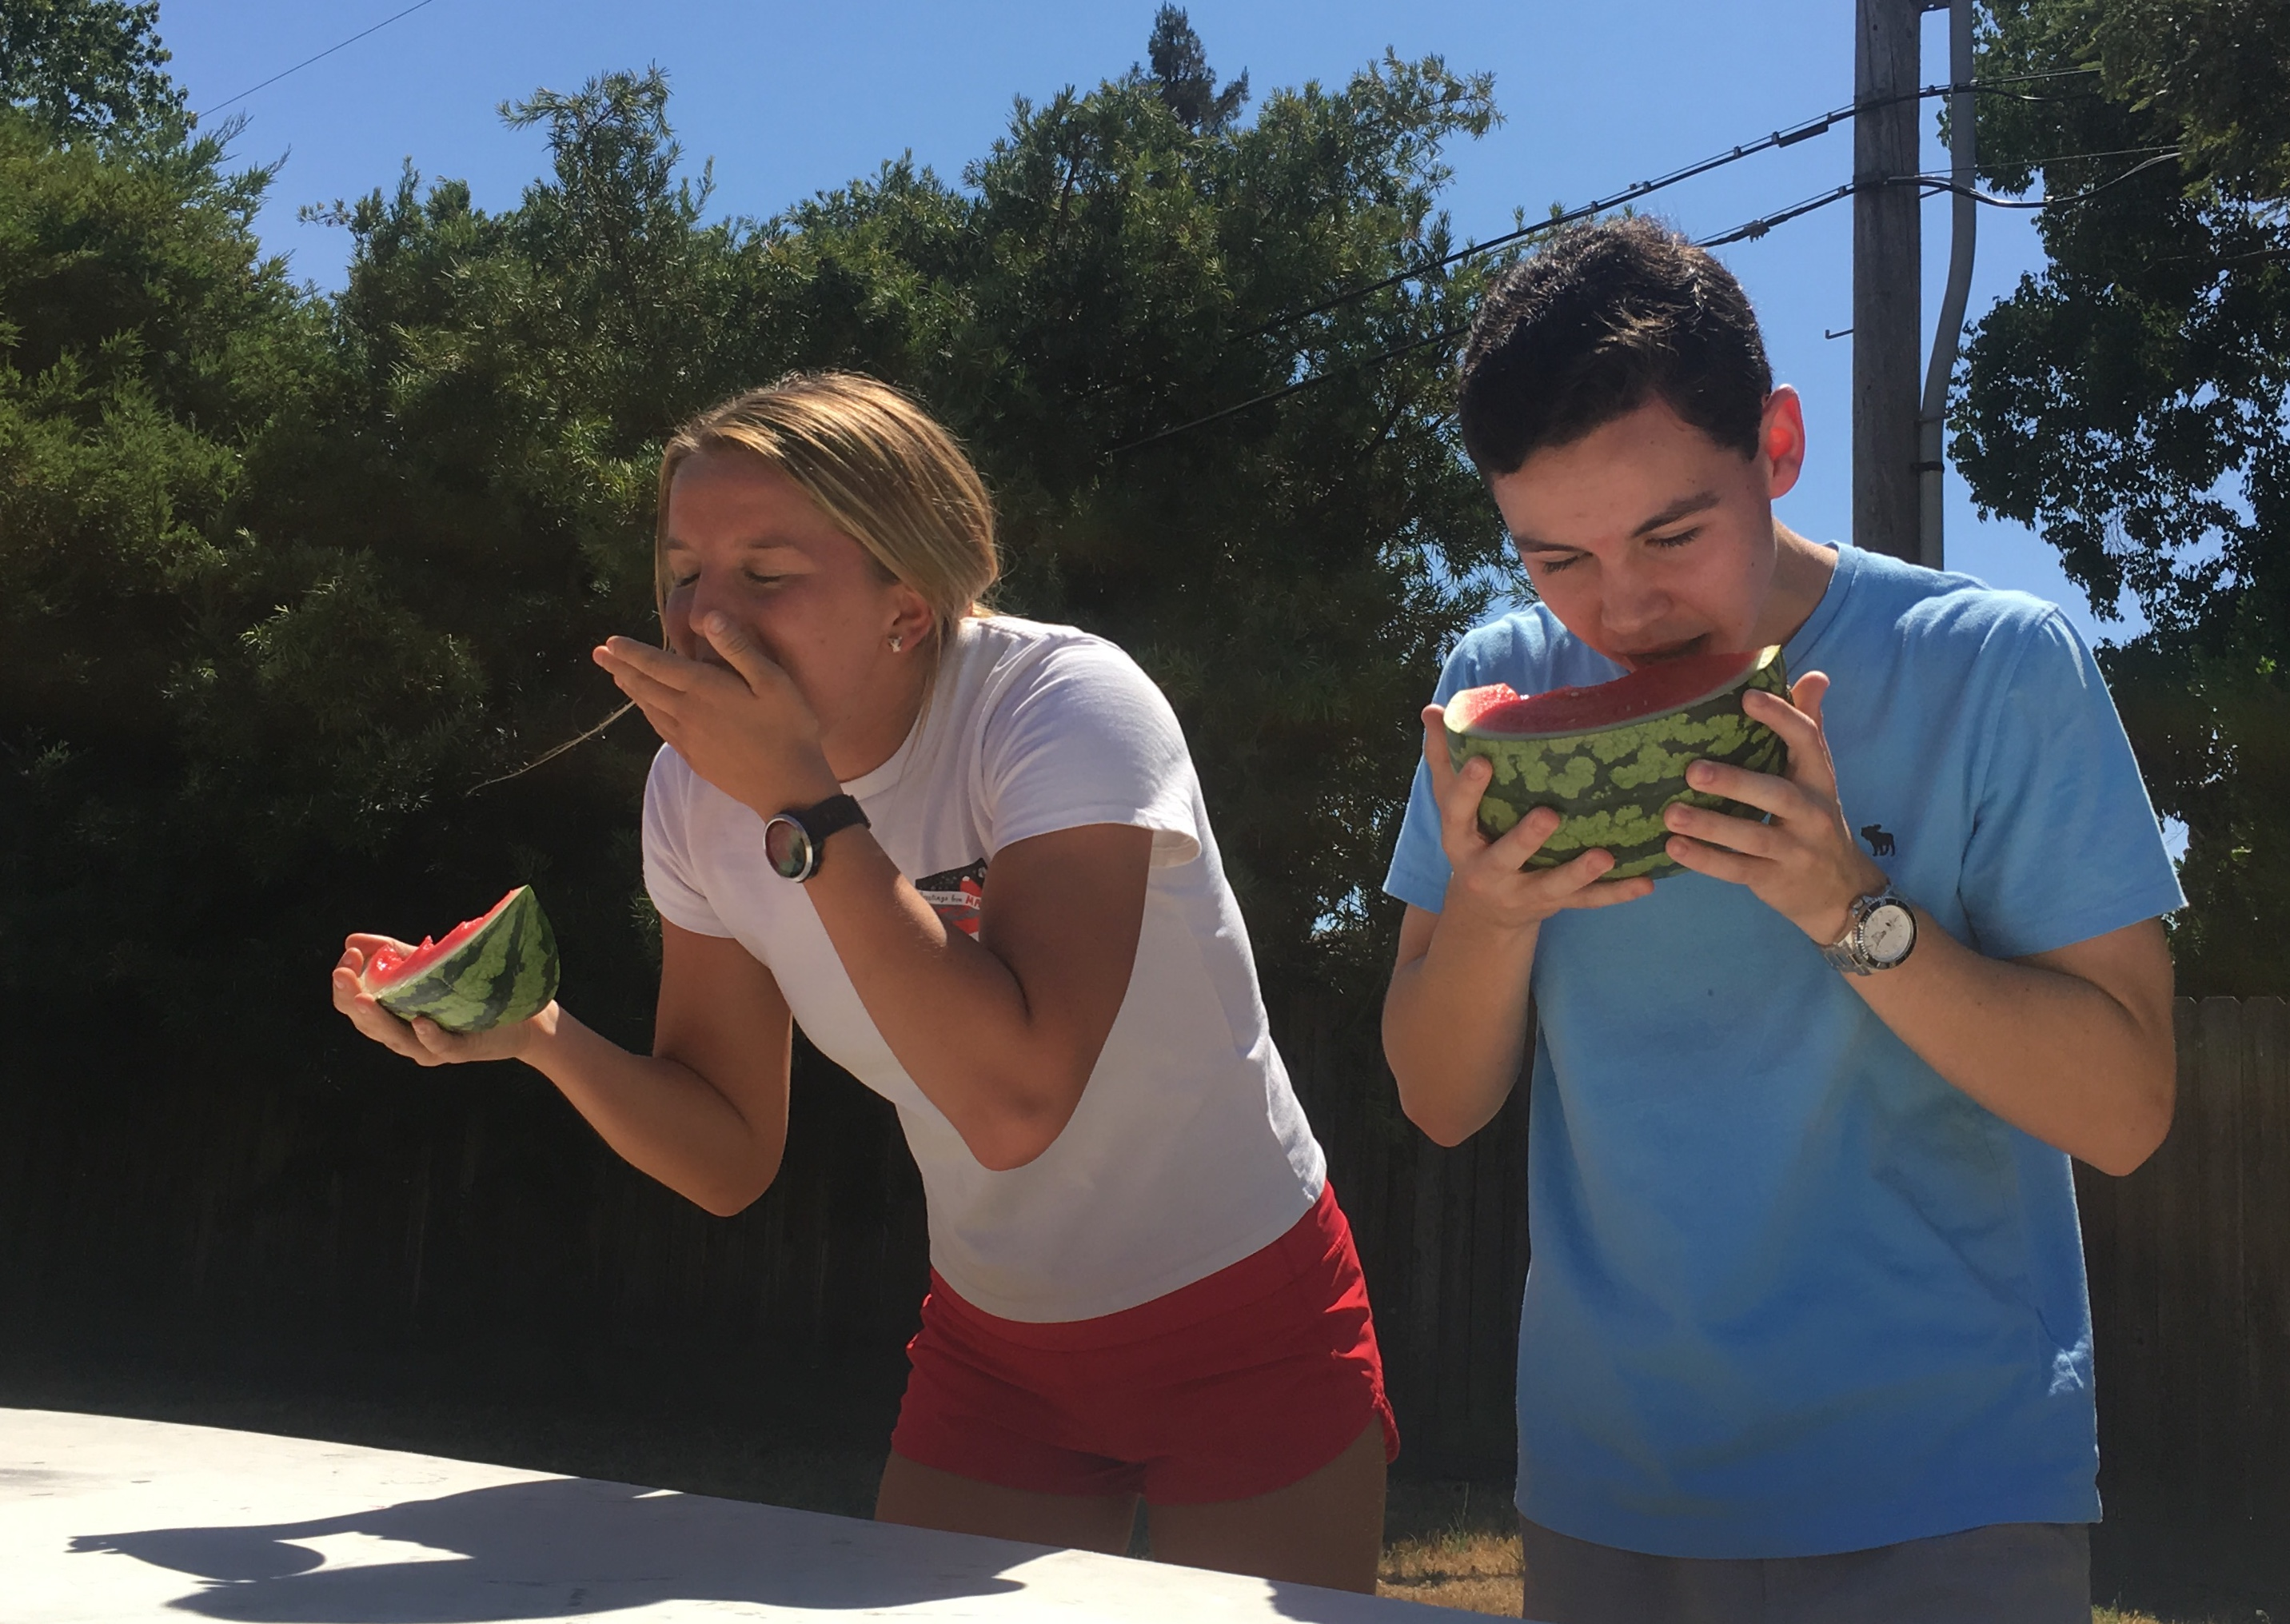 Junior Sydney Turner tries not to choke on her watermelon as she and sophomore Craig Bolman quickly consume the fruit. (Photo by Héloïse Schep)